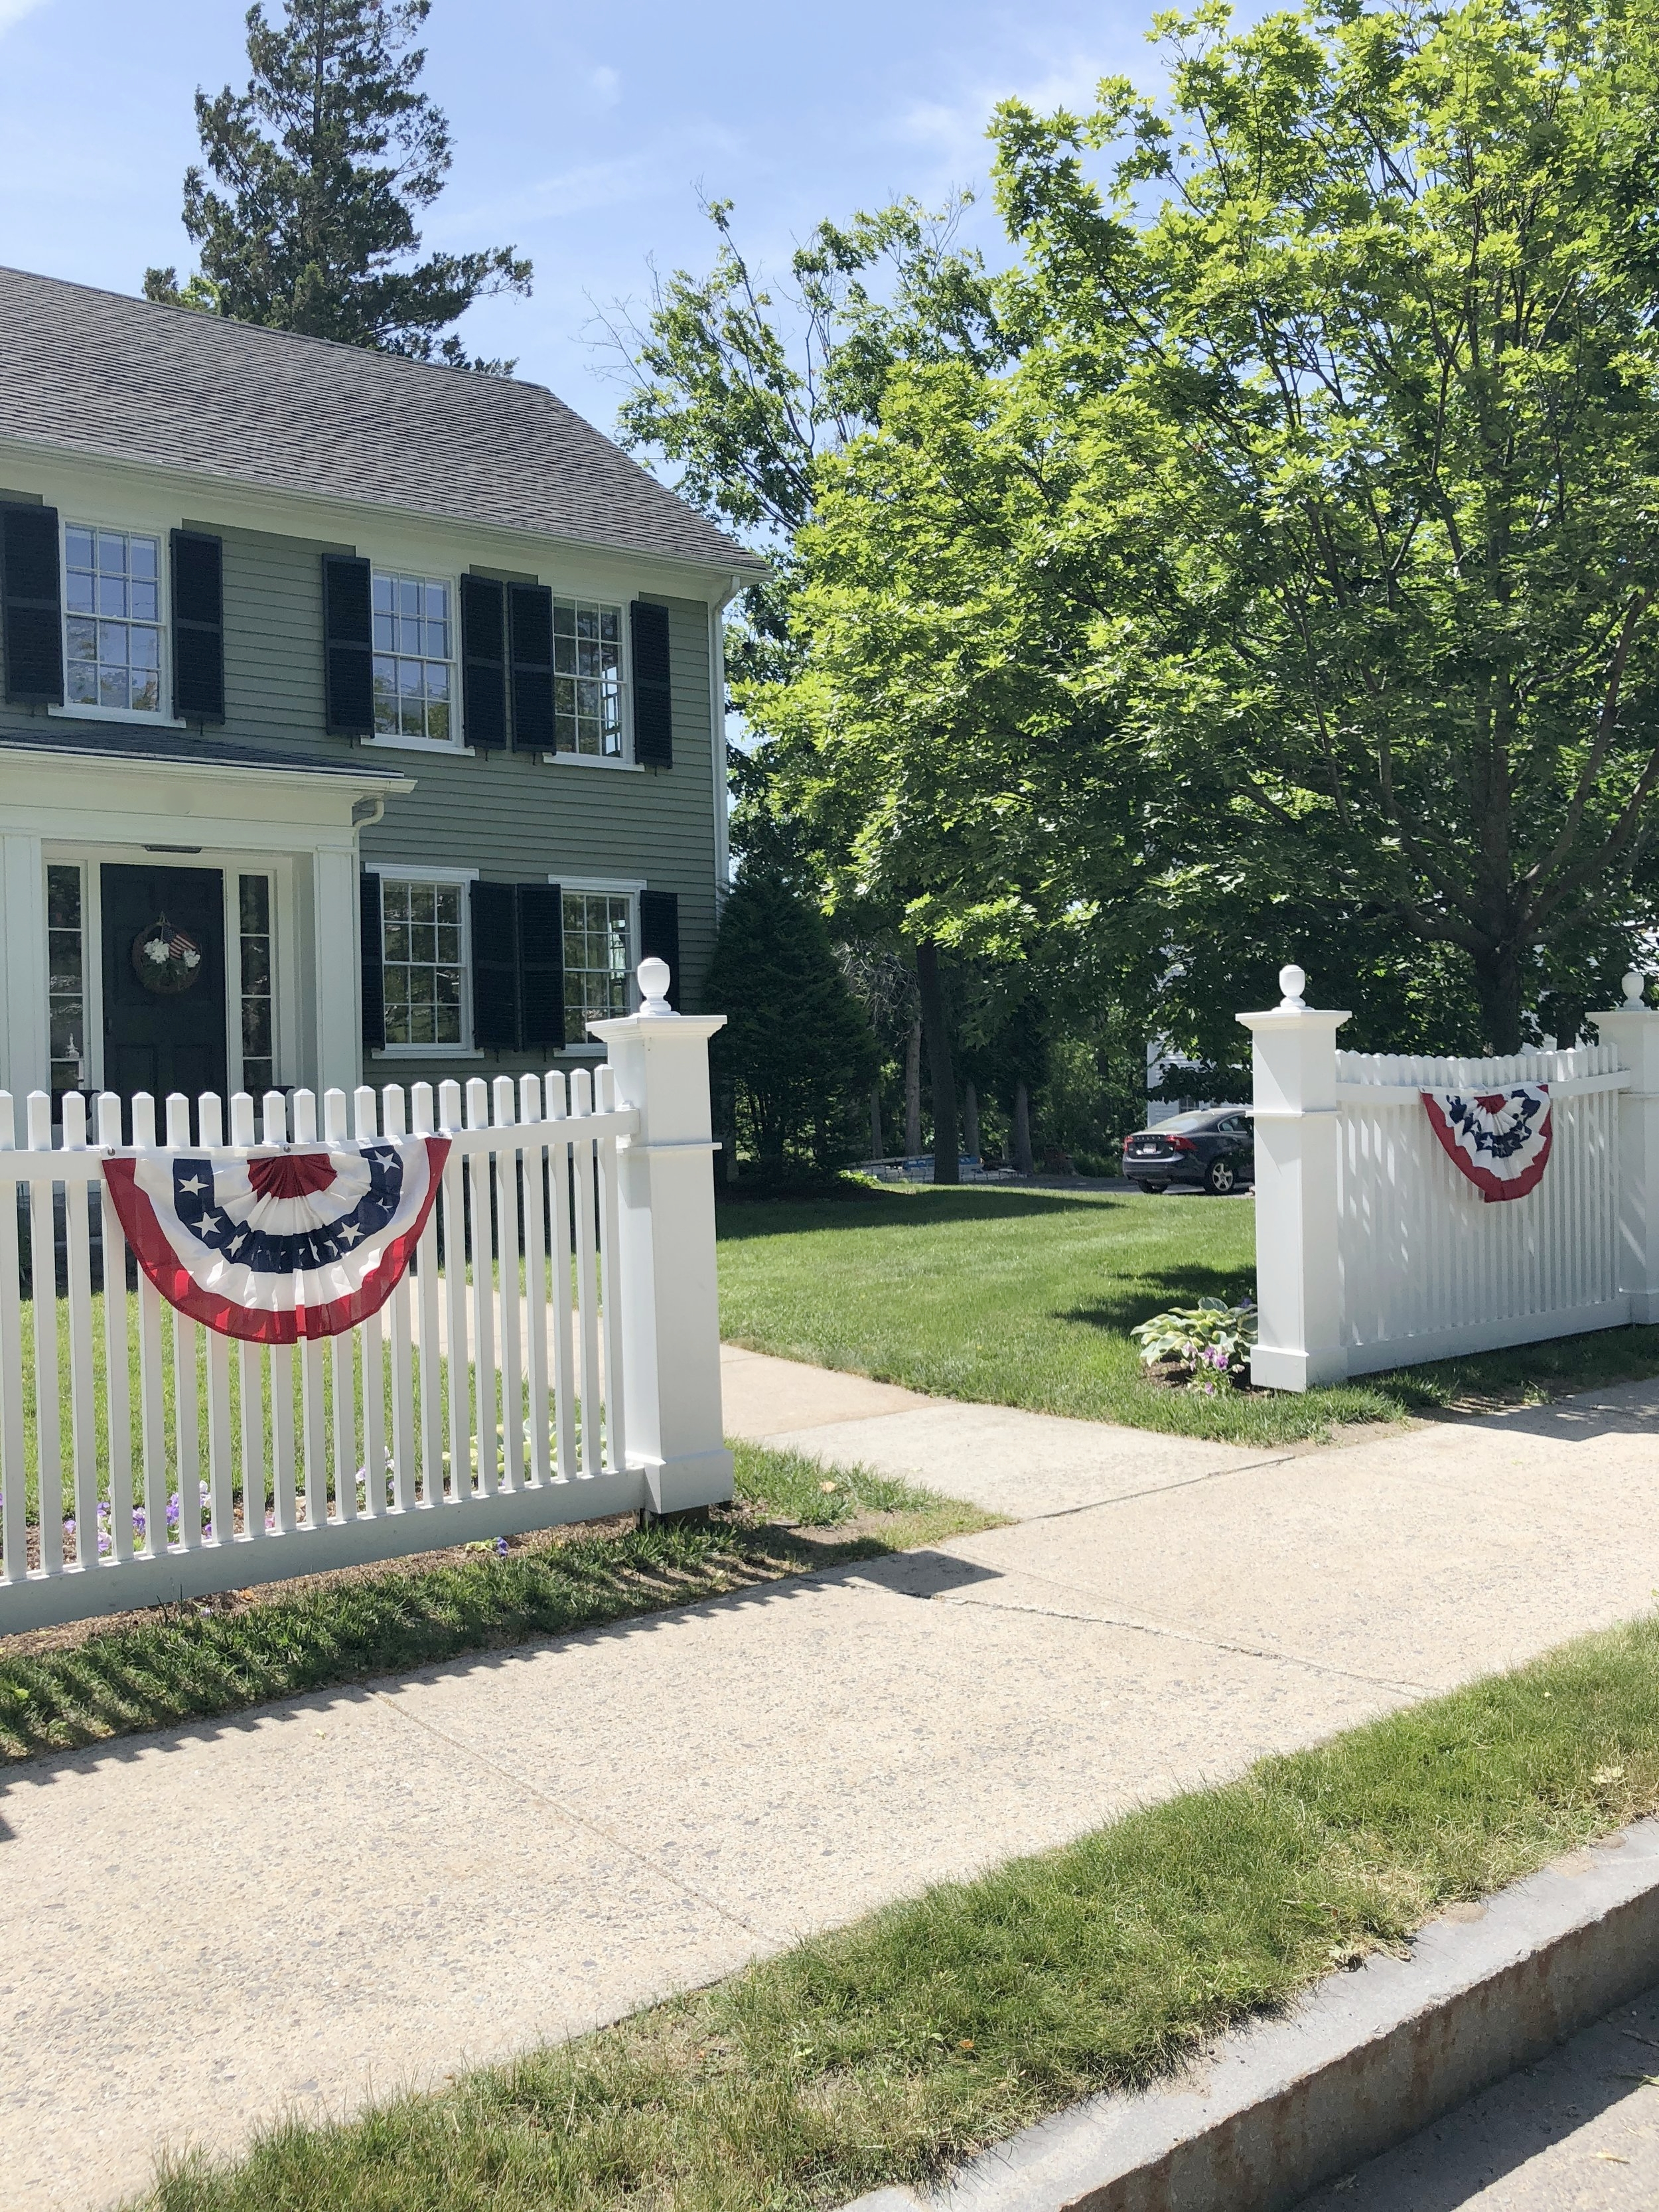 fourth of July bunting on fence